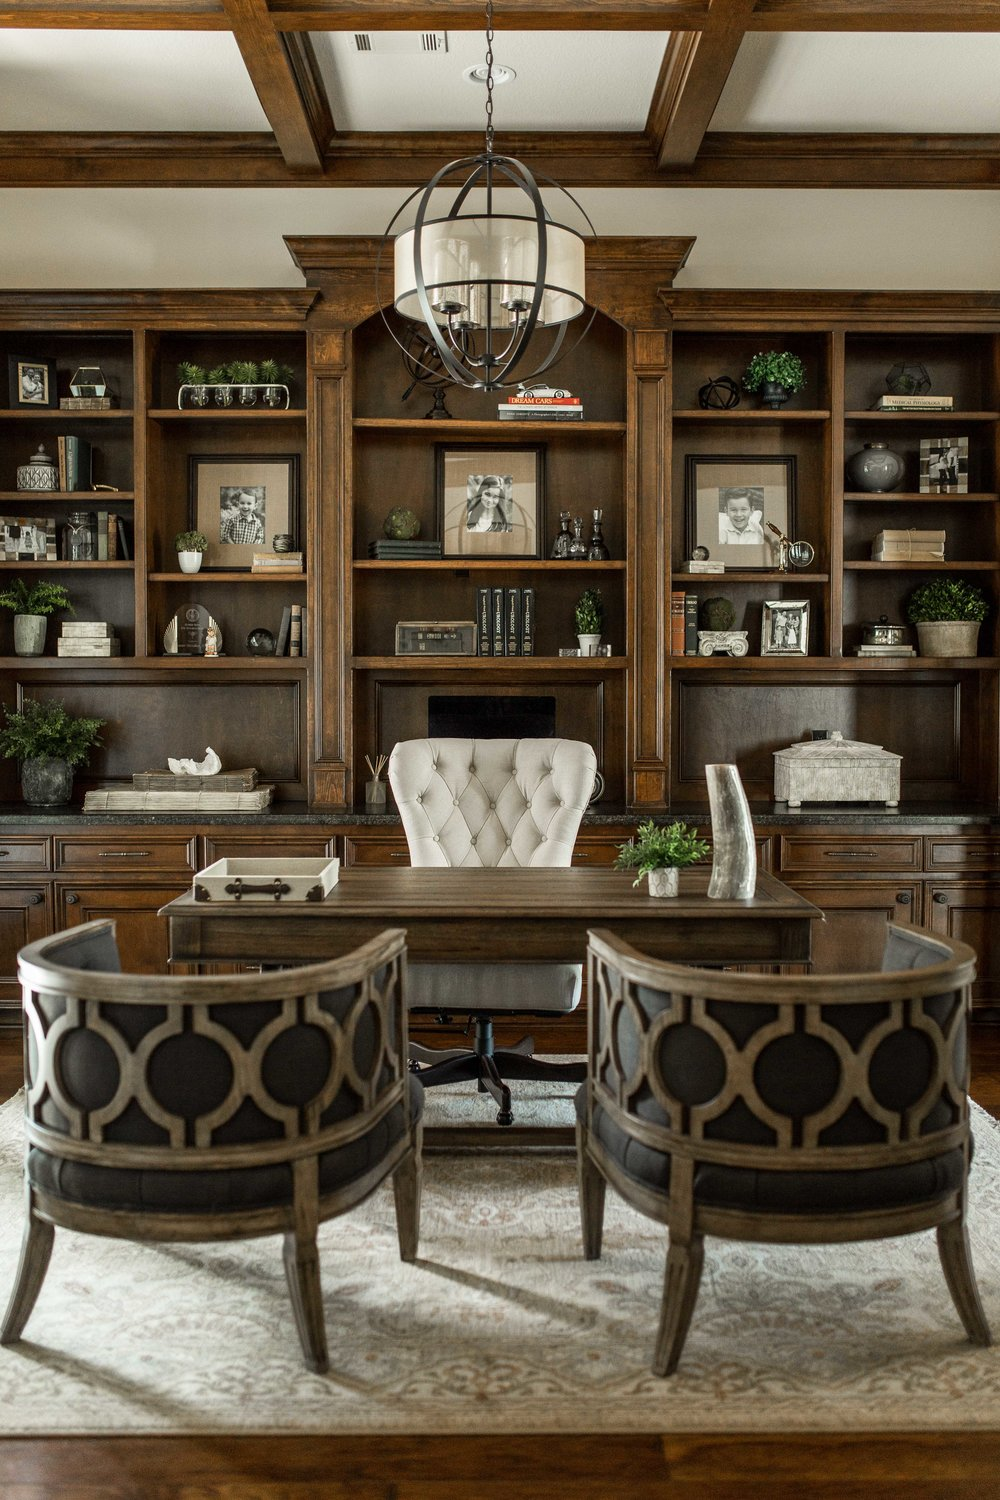 INTERIORS AND REAL ESTATE